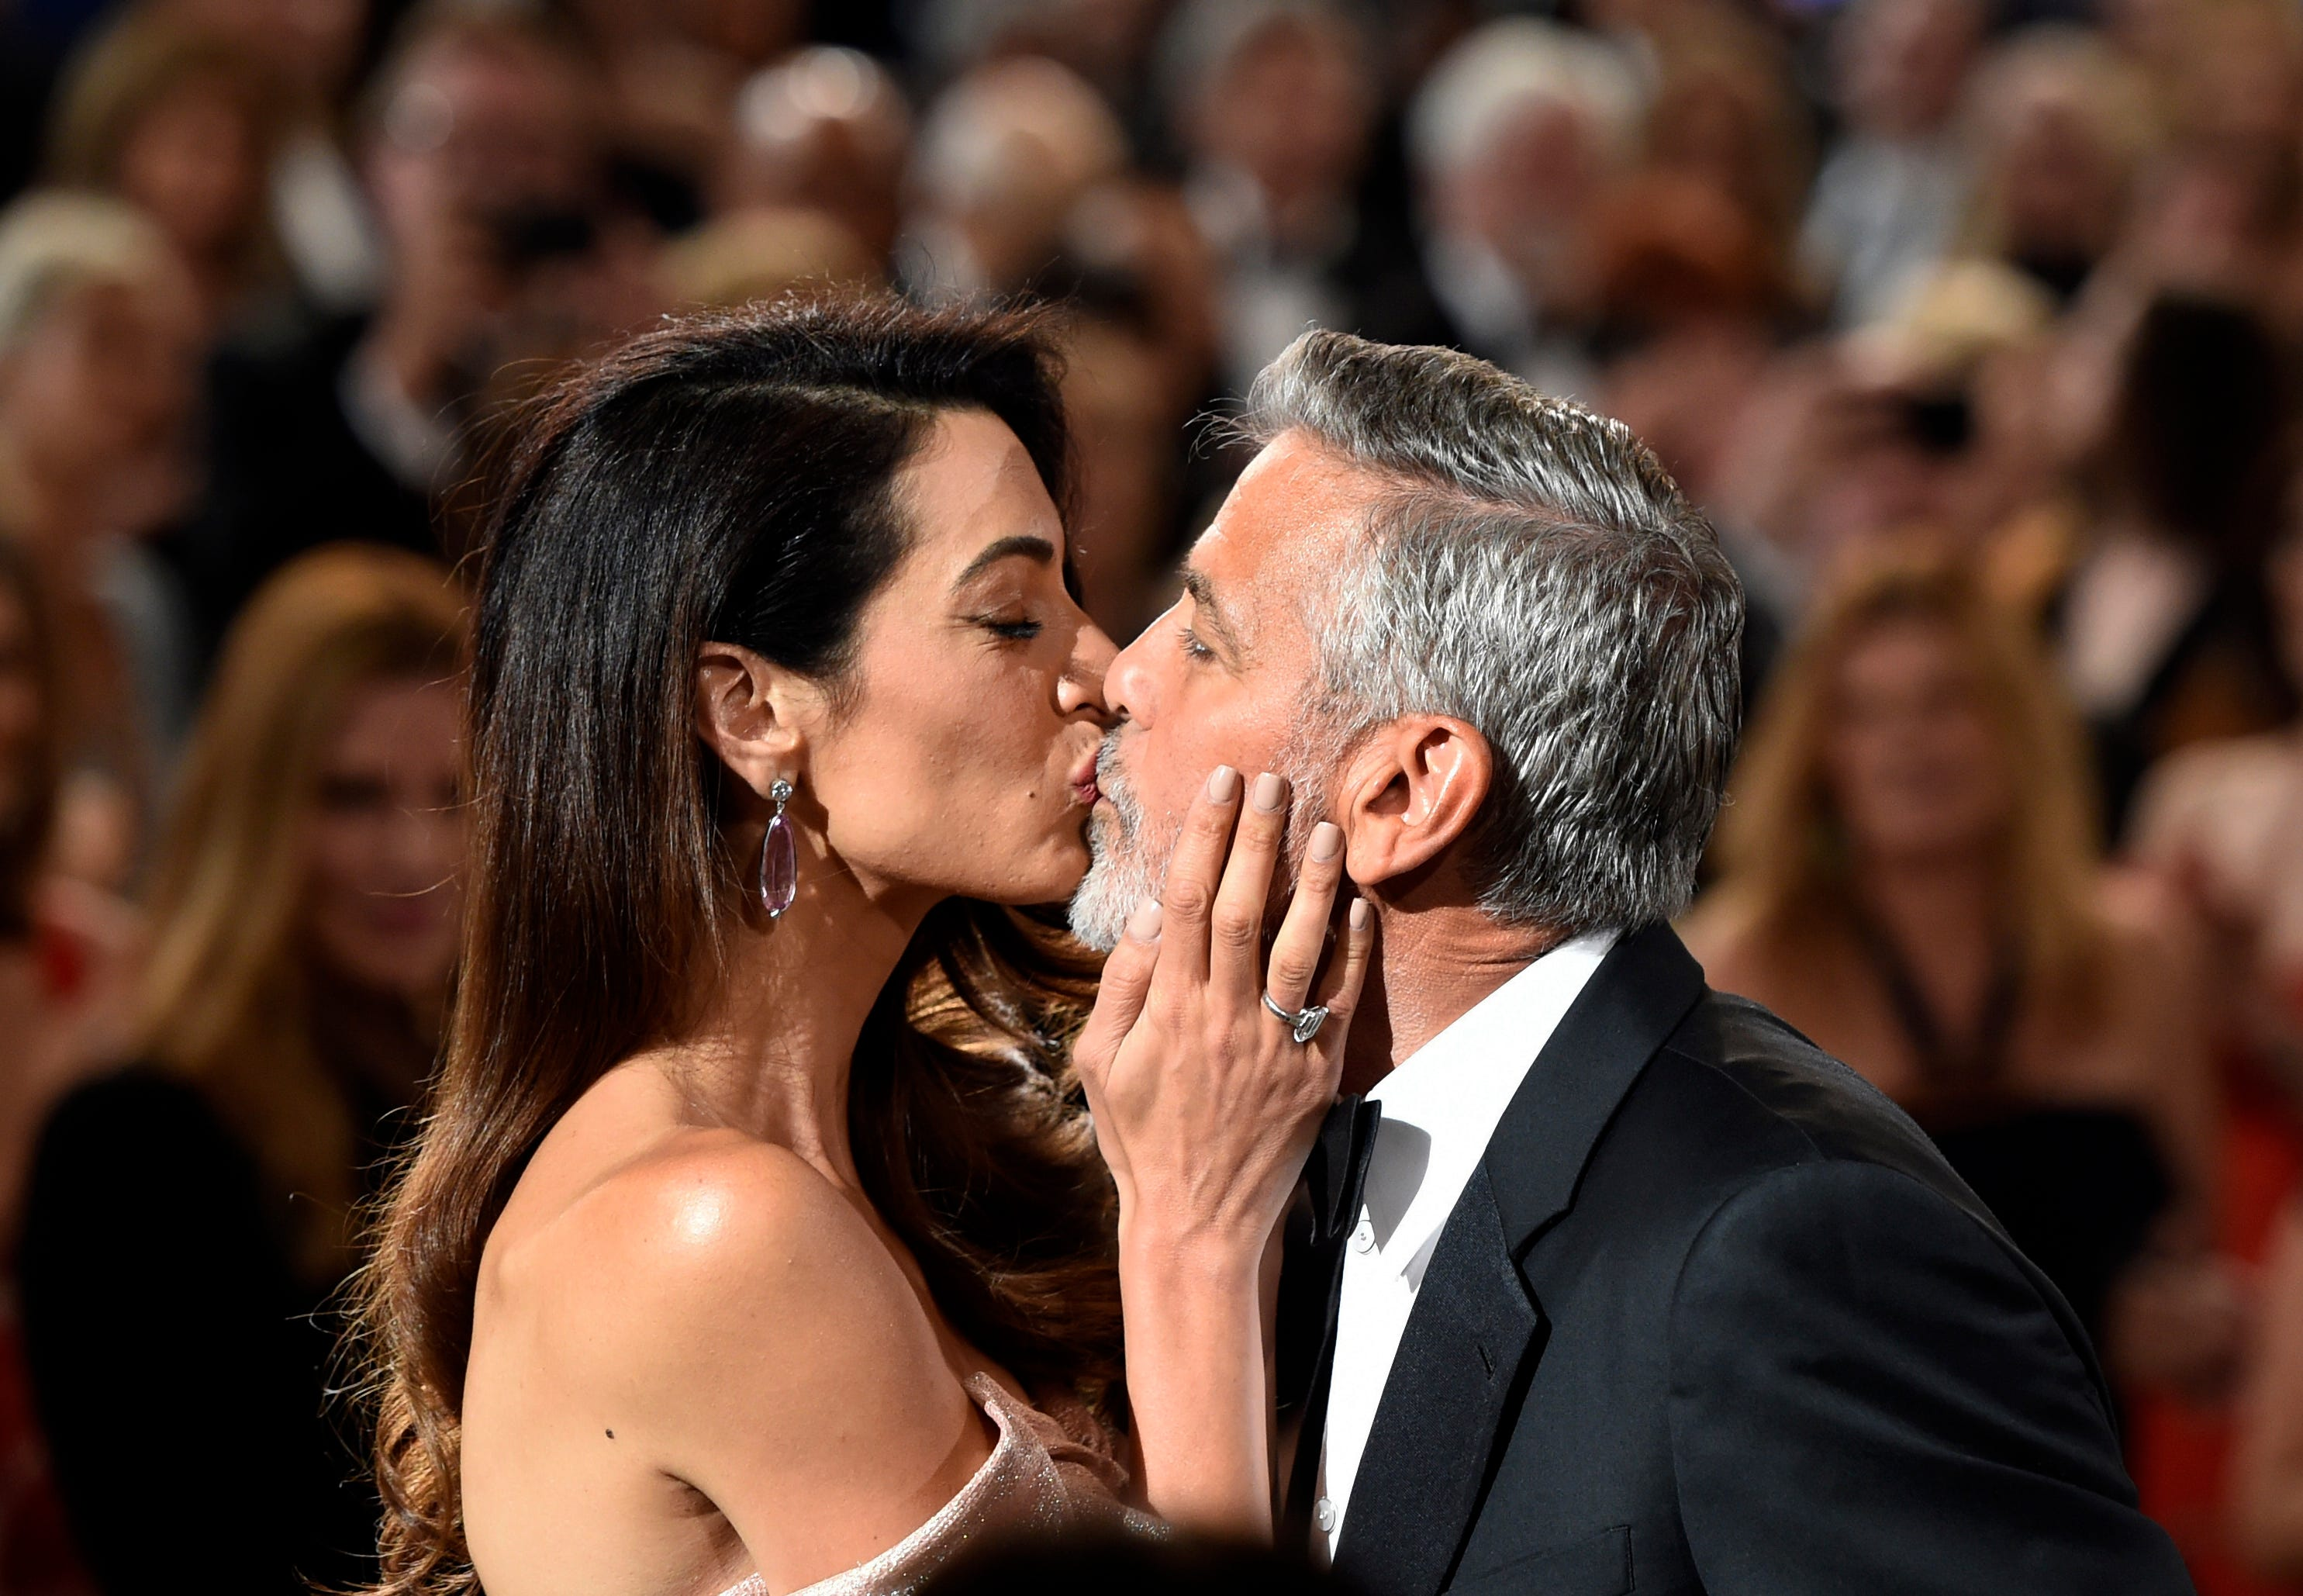 George and Amal Clooney s love story in pictures